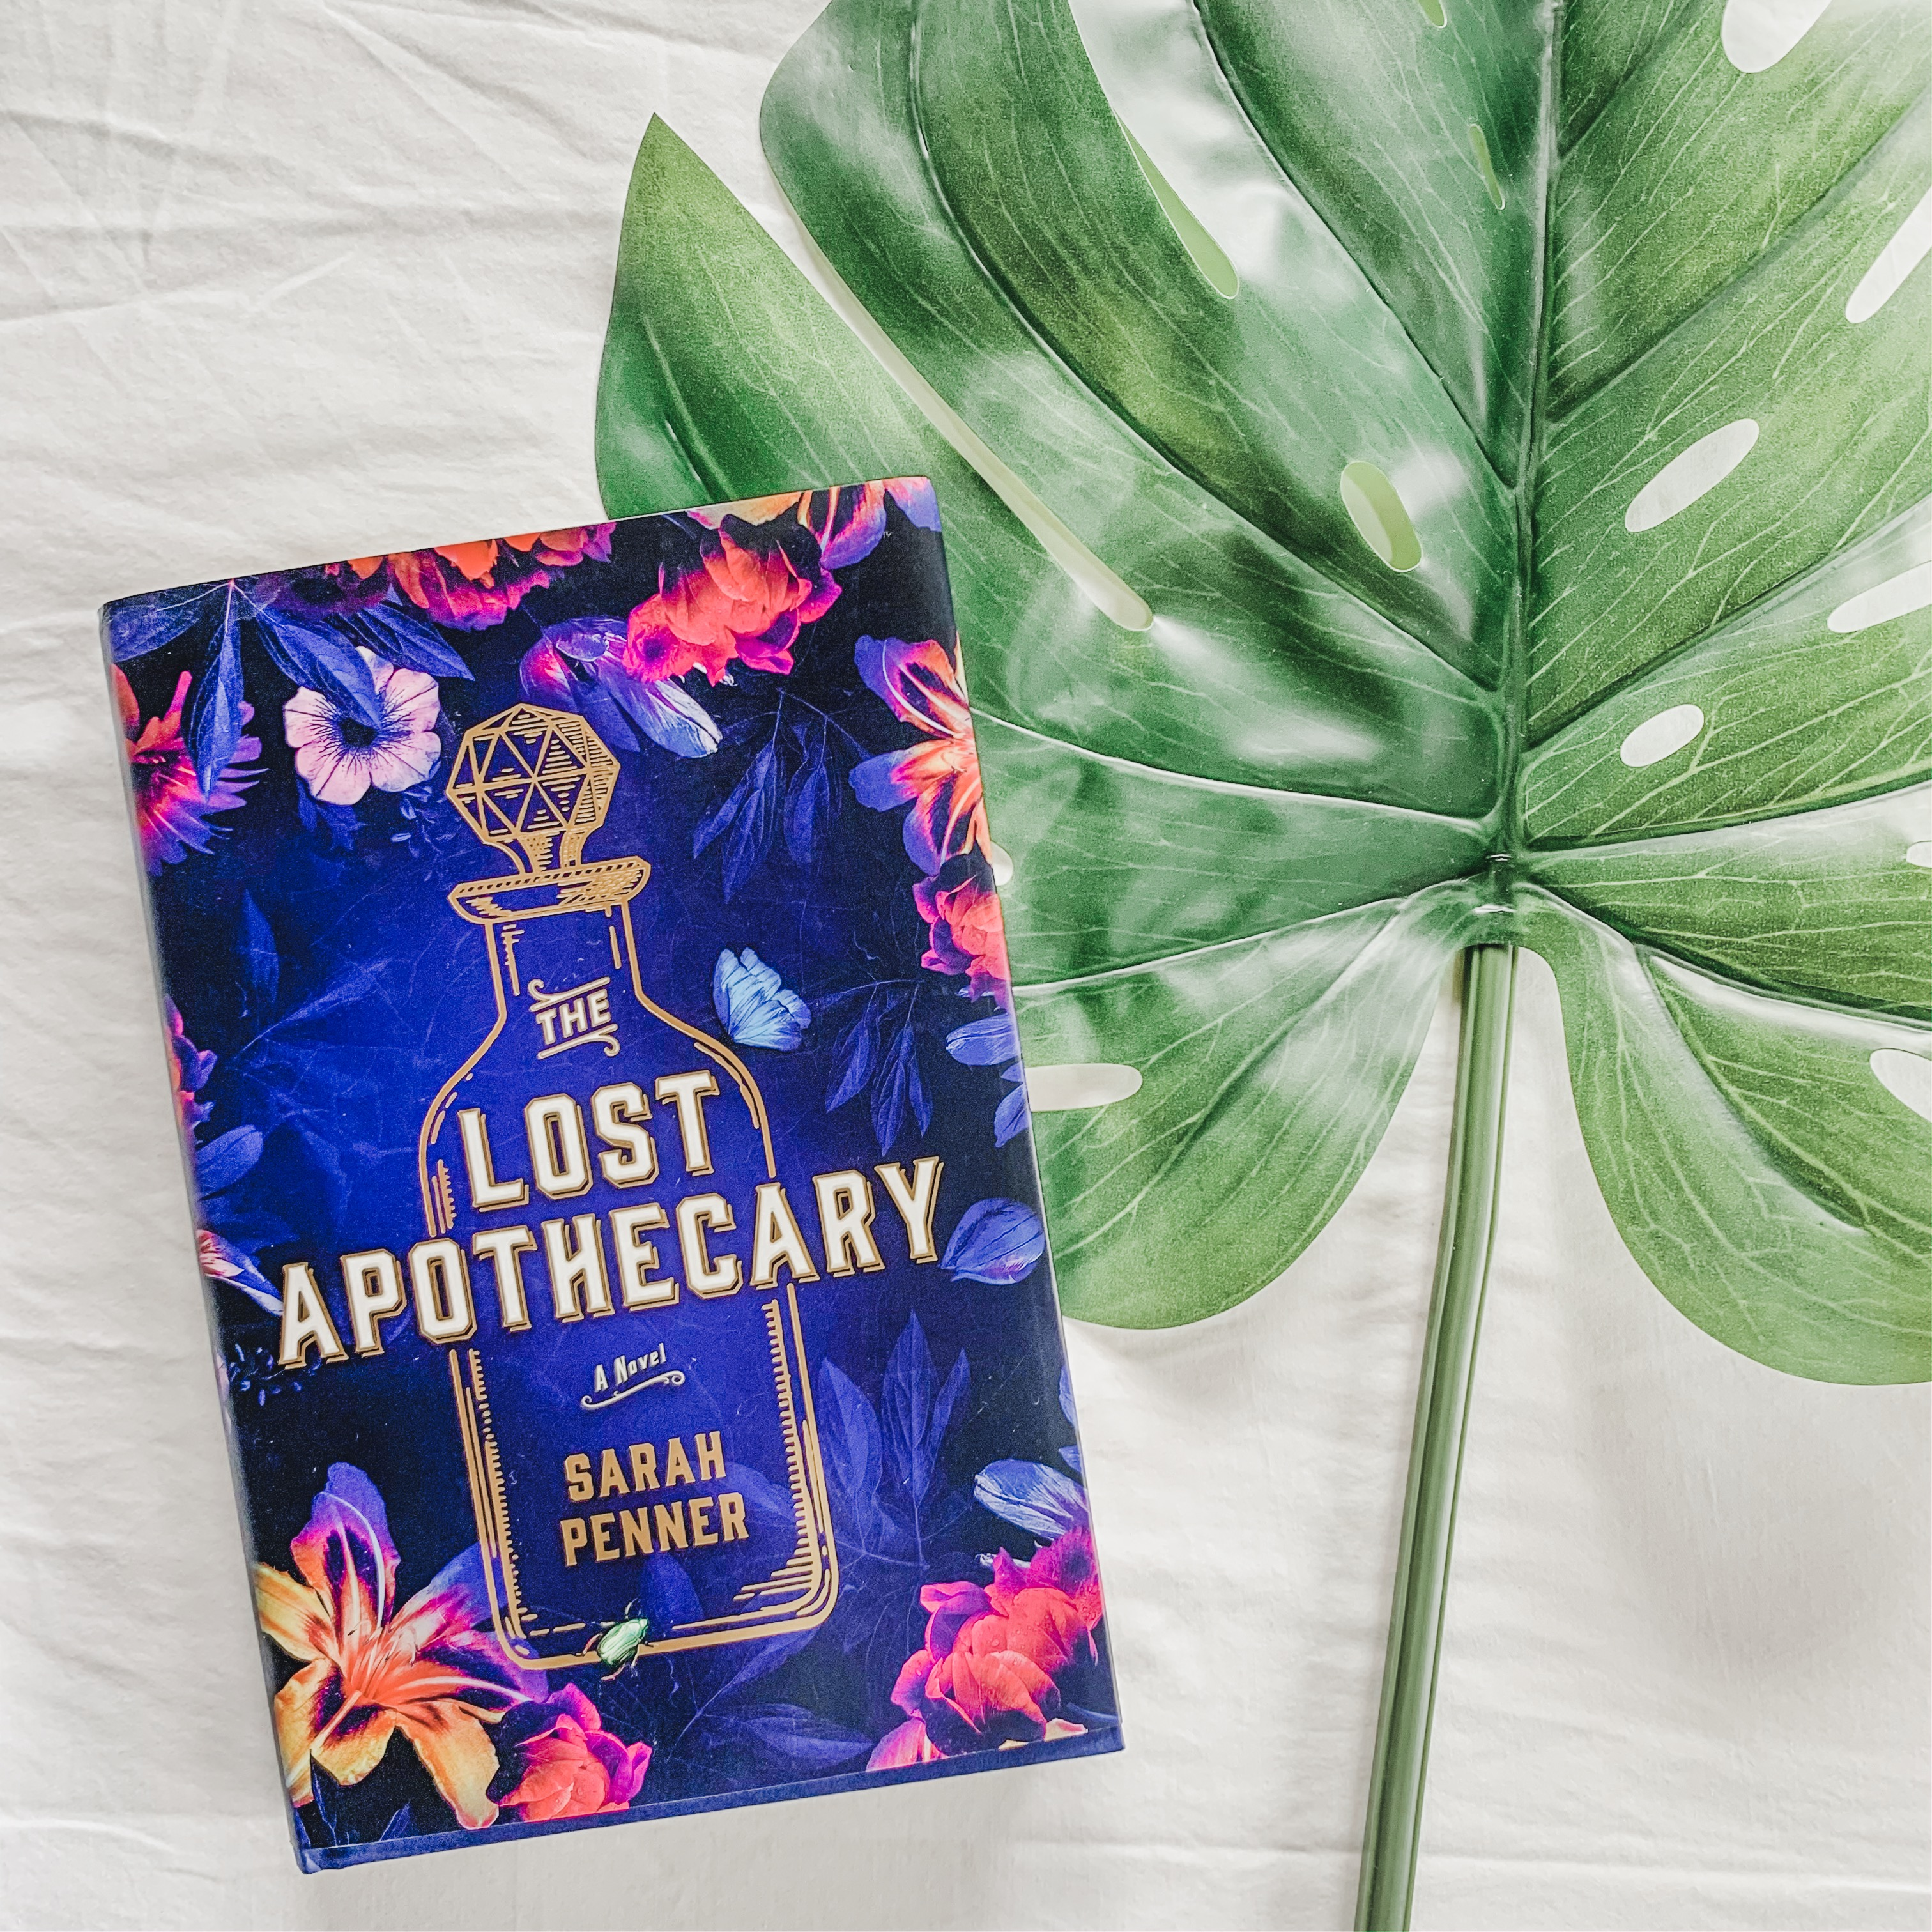 The Lost Apothecary de Sarah Penner